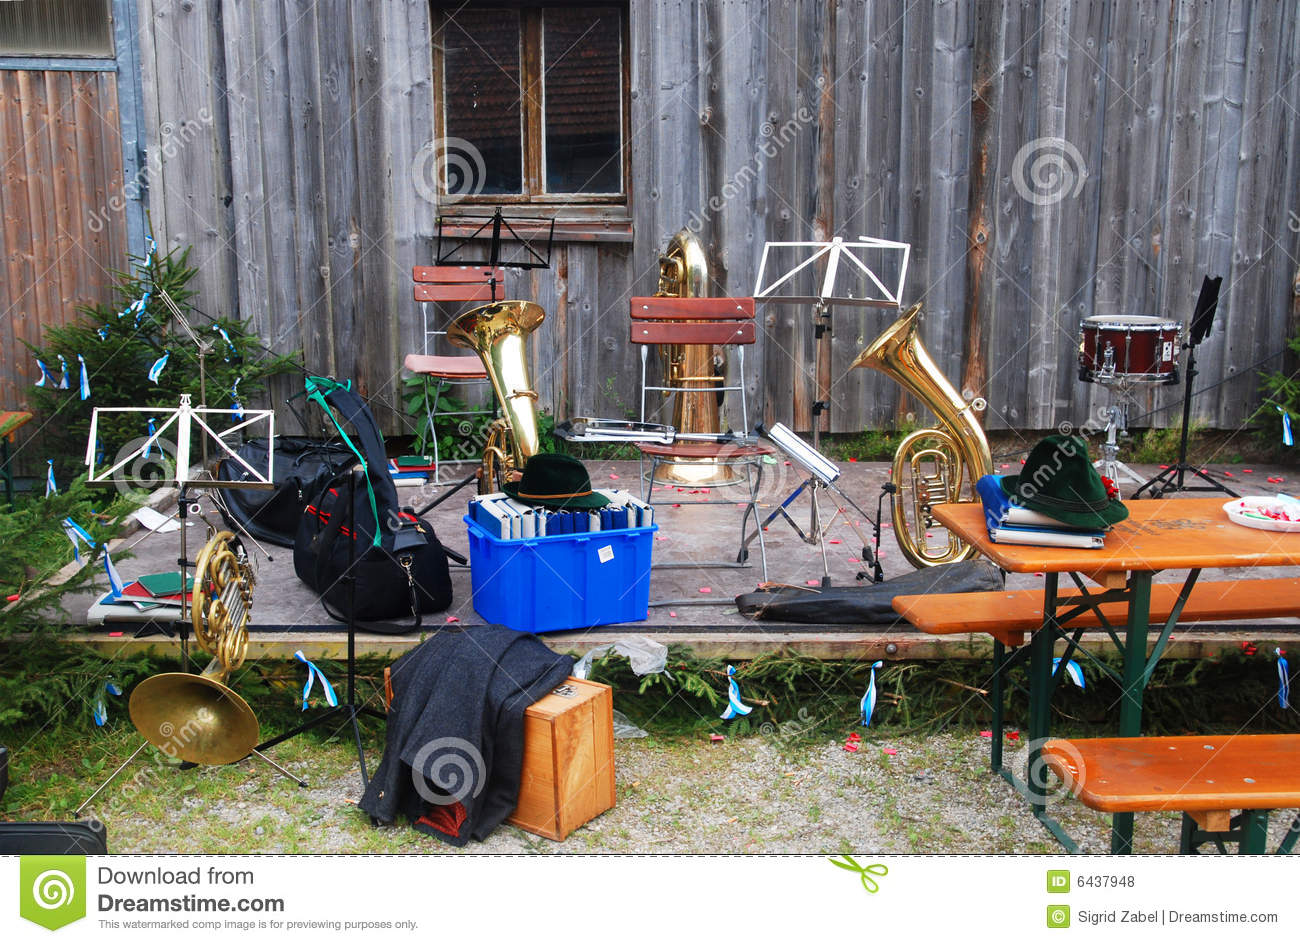 abandoned instruments royalty free stock photos image 6437948